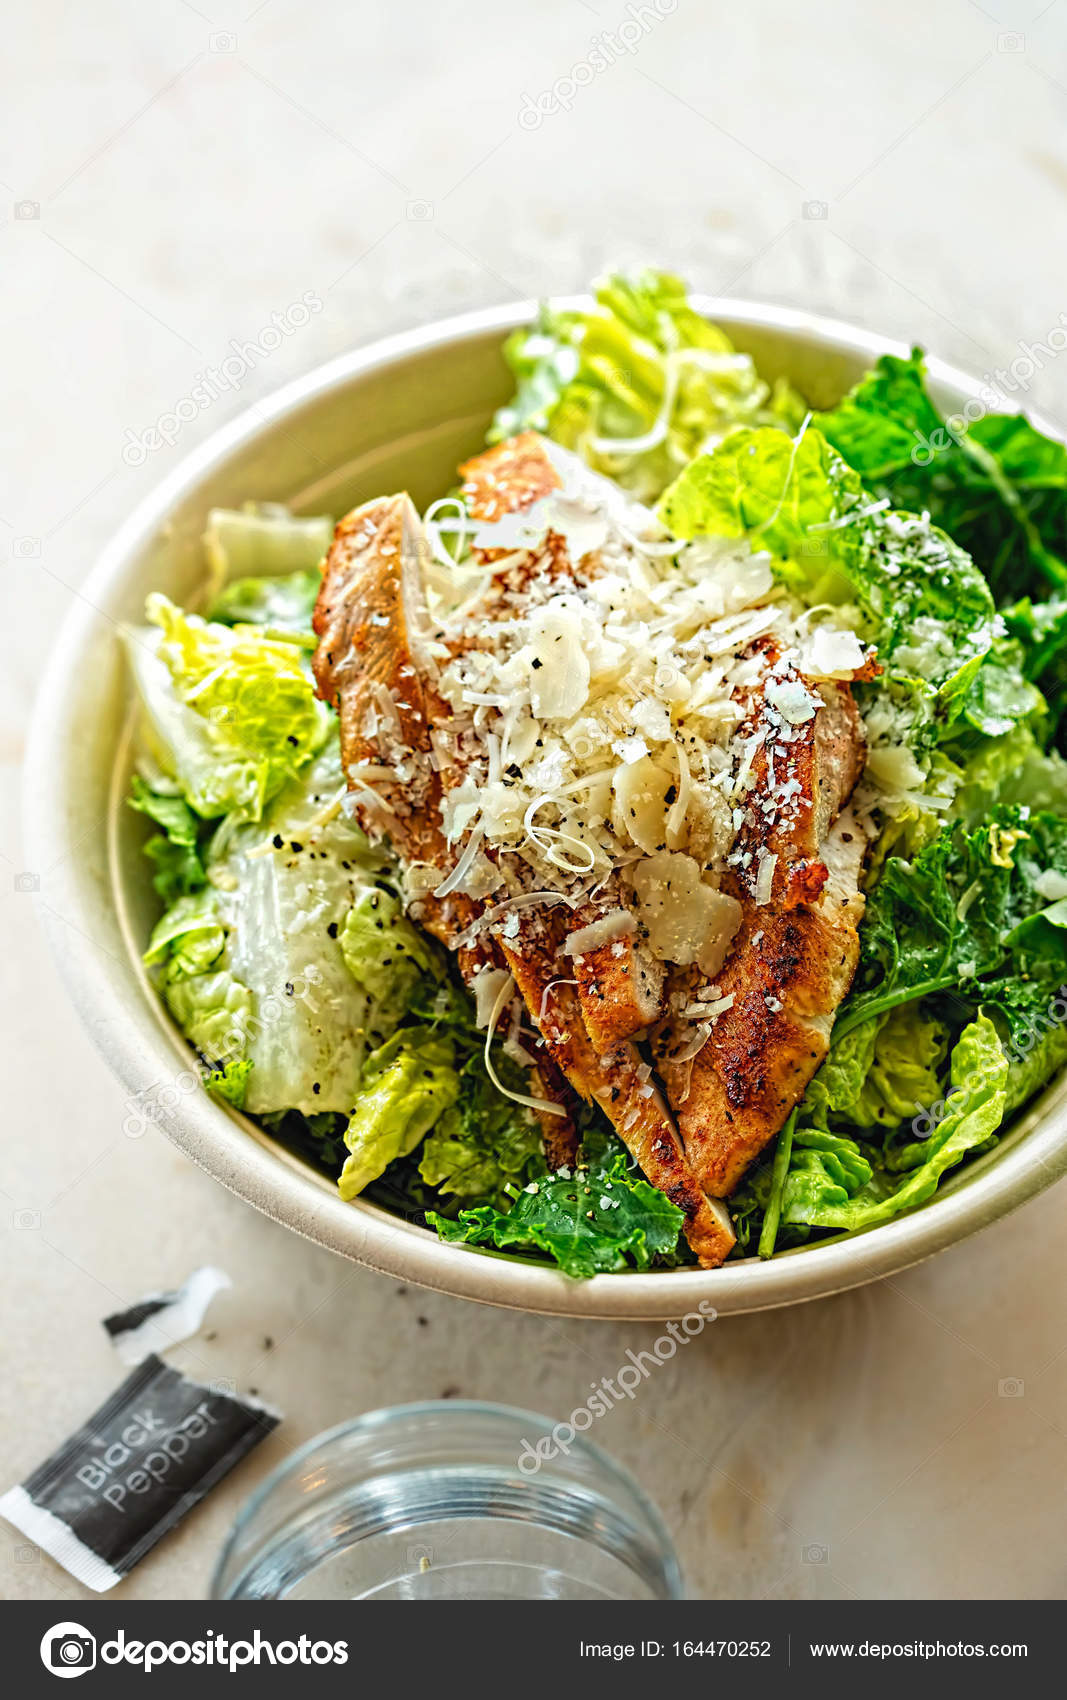 Chicken Ceasar Salad Cos Lettuce Leaves Grilled Chicken Breast